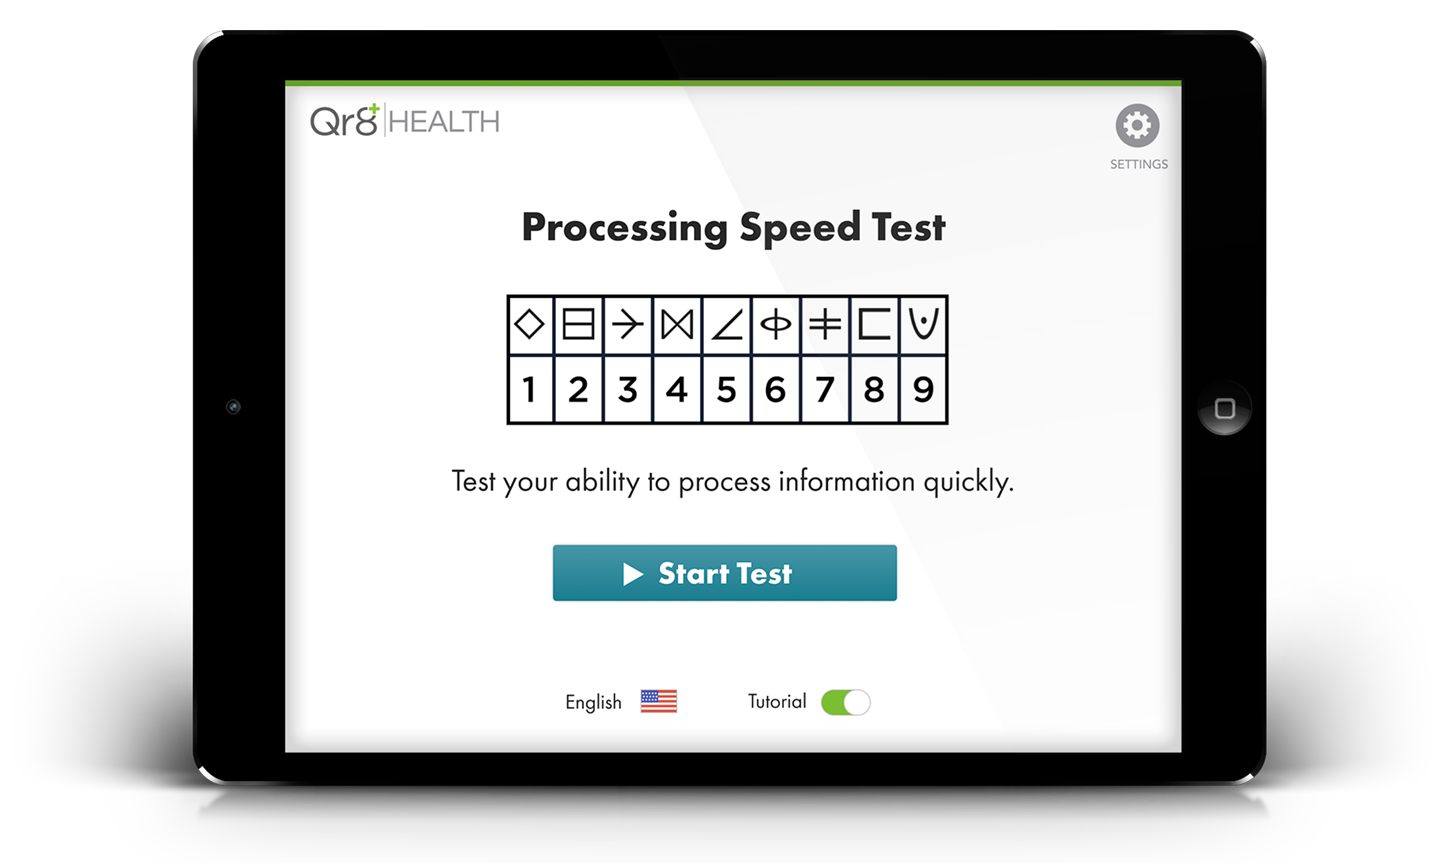 Processing Speed Test